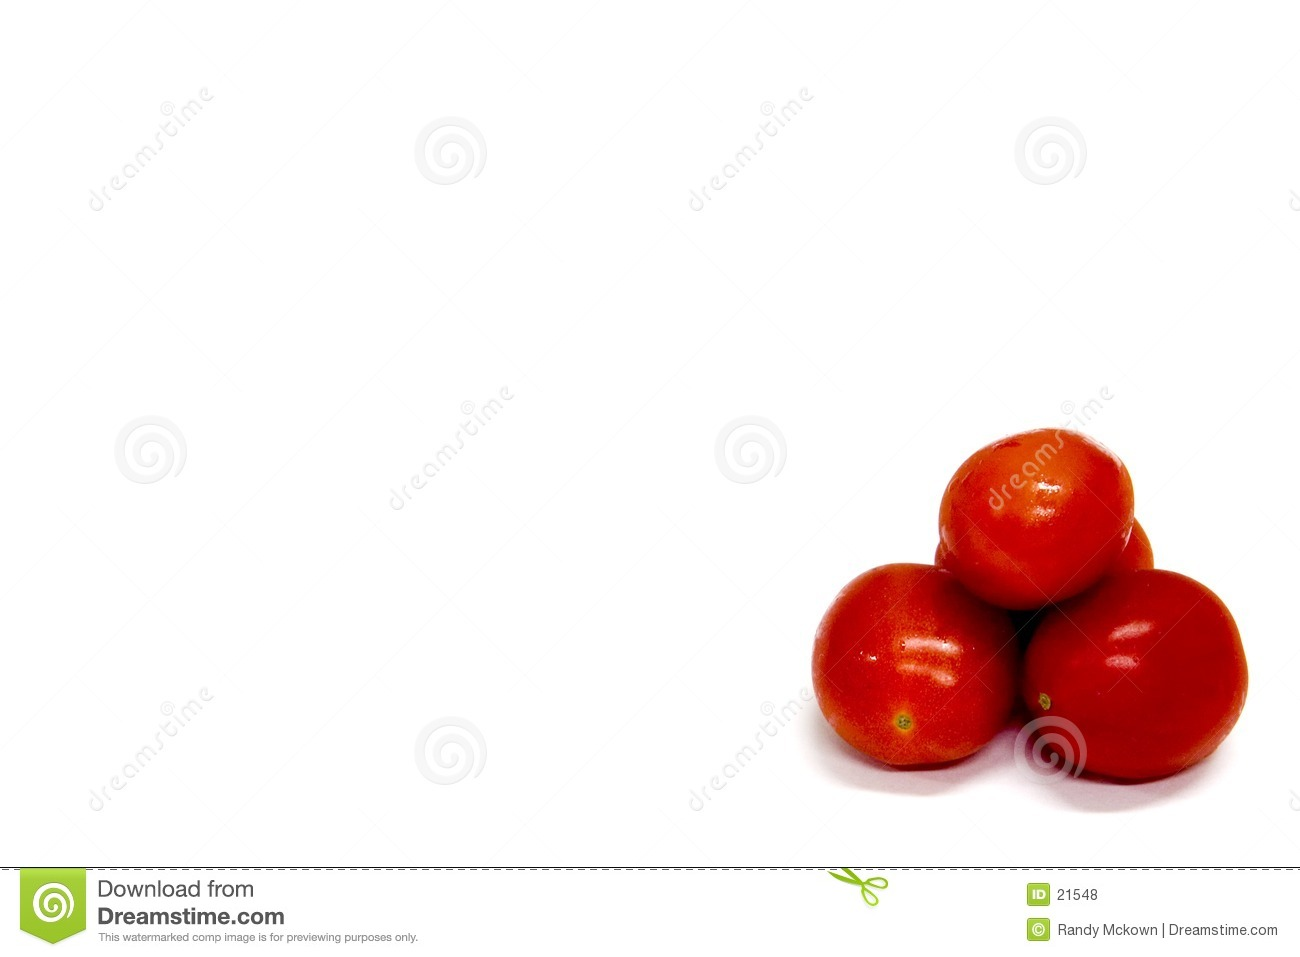 Tomates de raisin